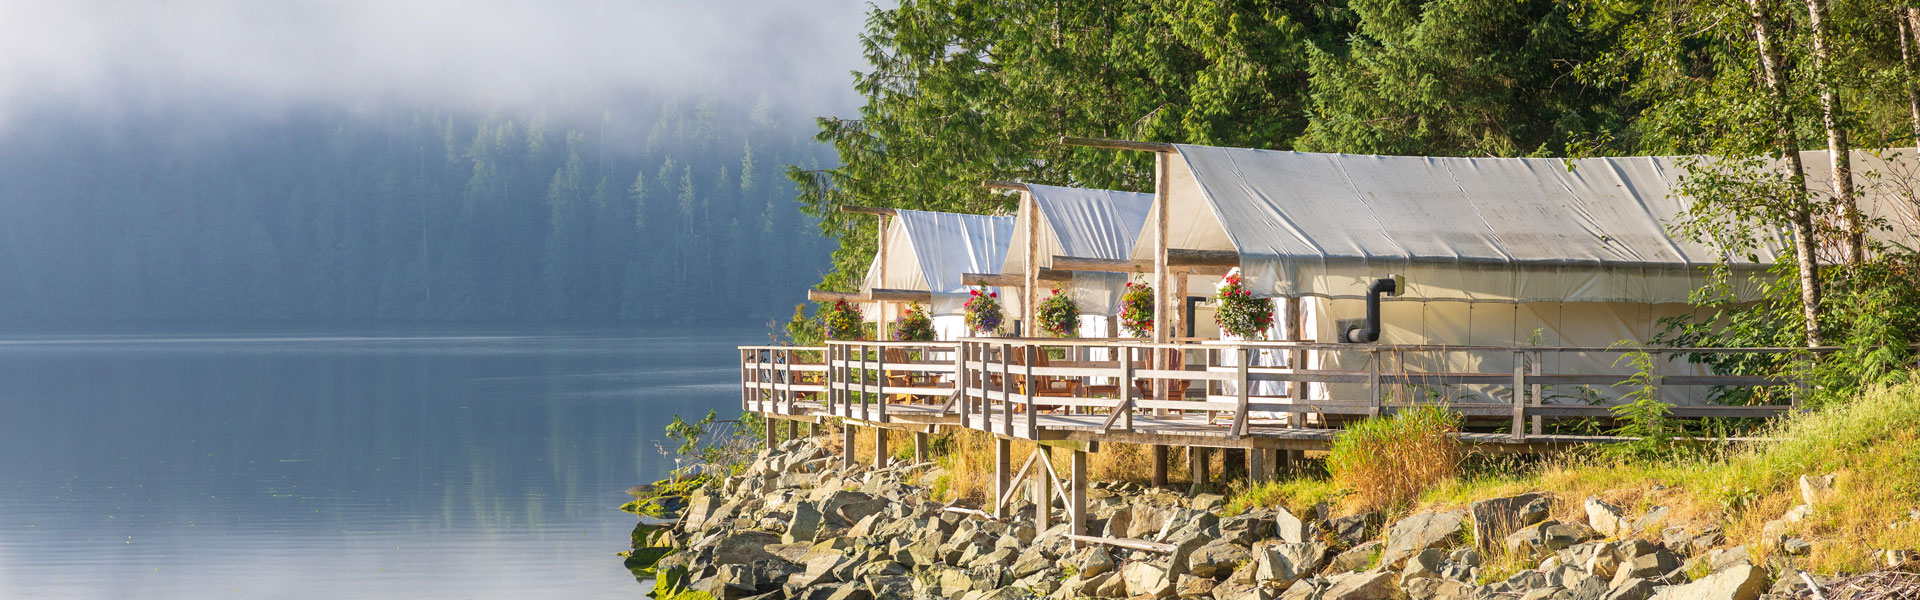 West Coast Canada Rail Trips with Luxury Lodges & Hotels